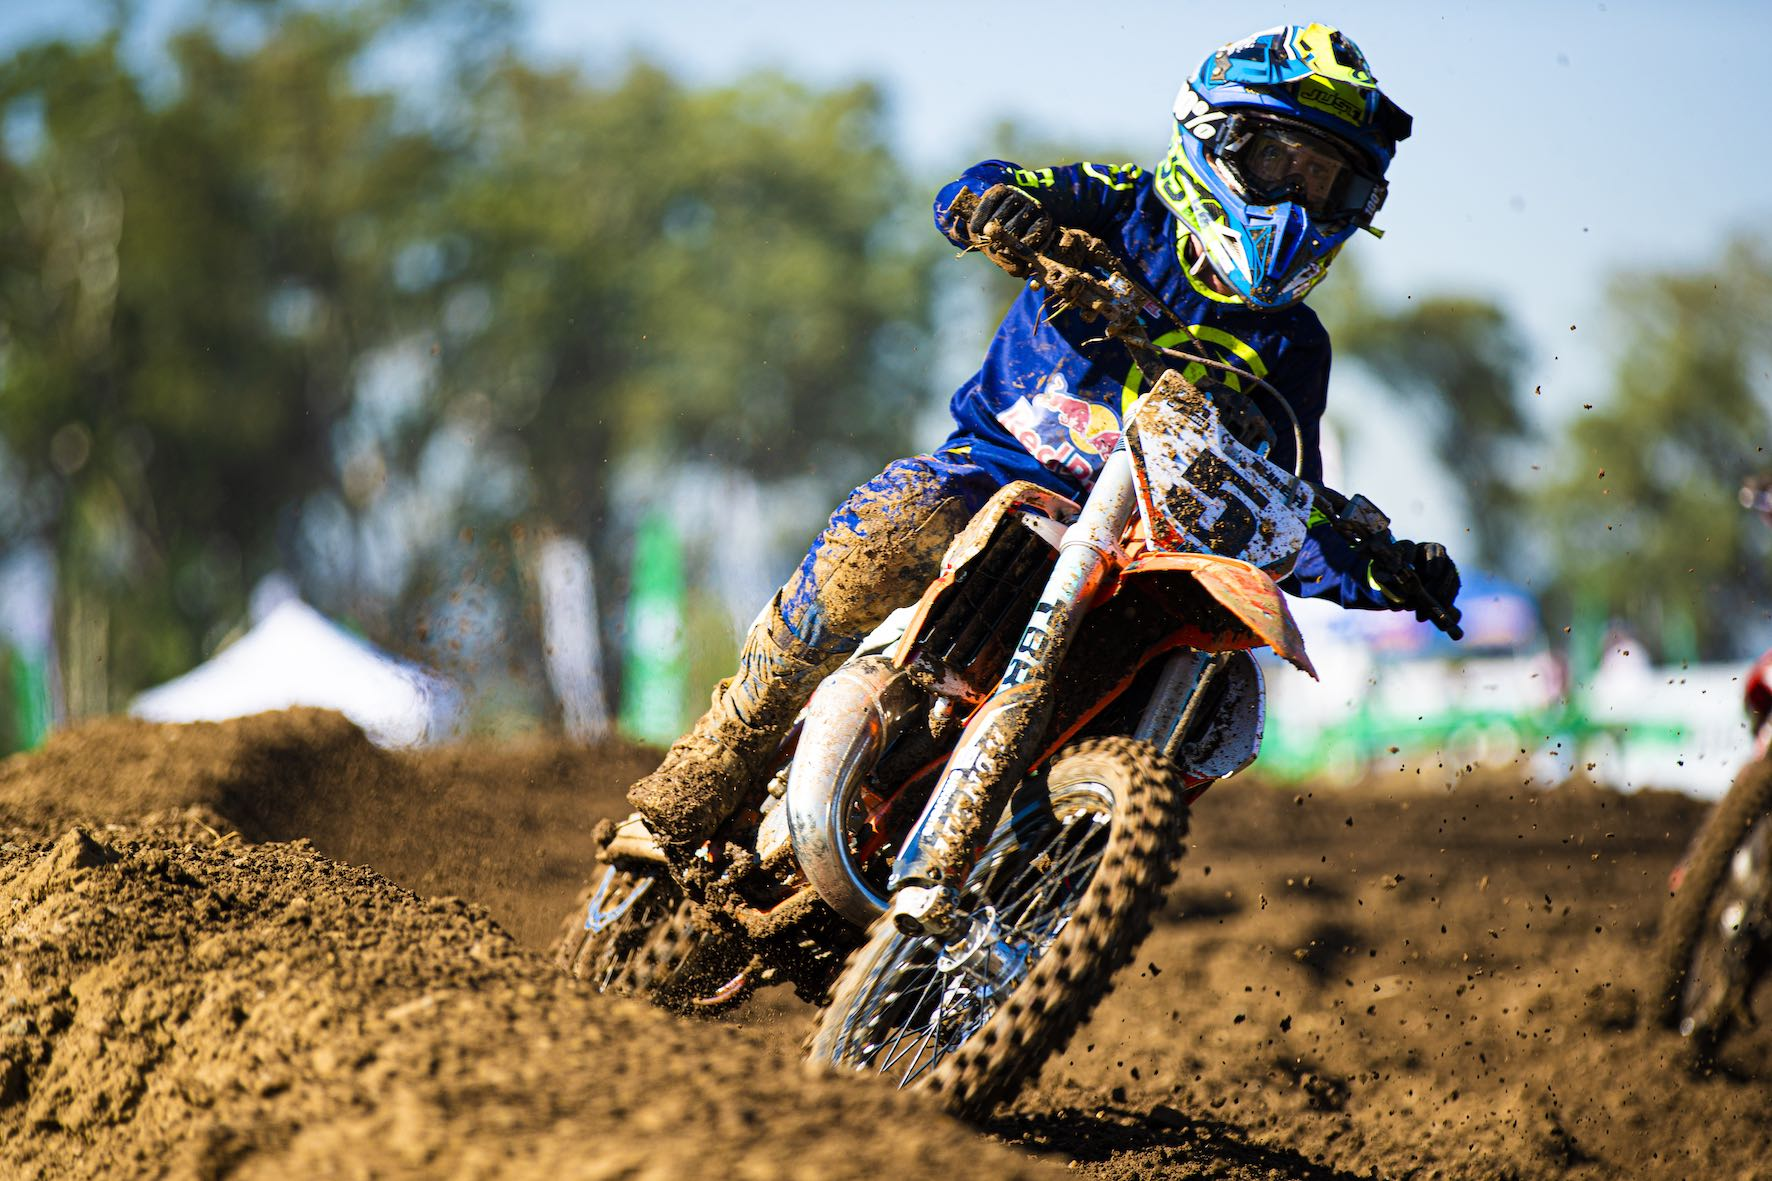 Tyler Petersen winning the 85cc class at Round 1 of the 2021 SA Motocross Nationals